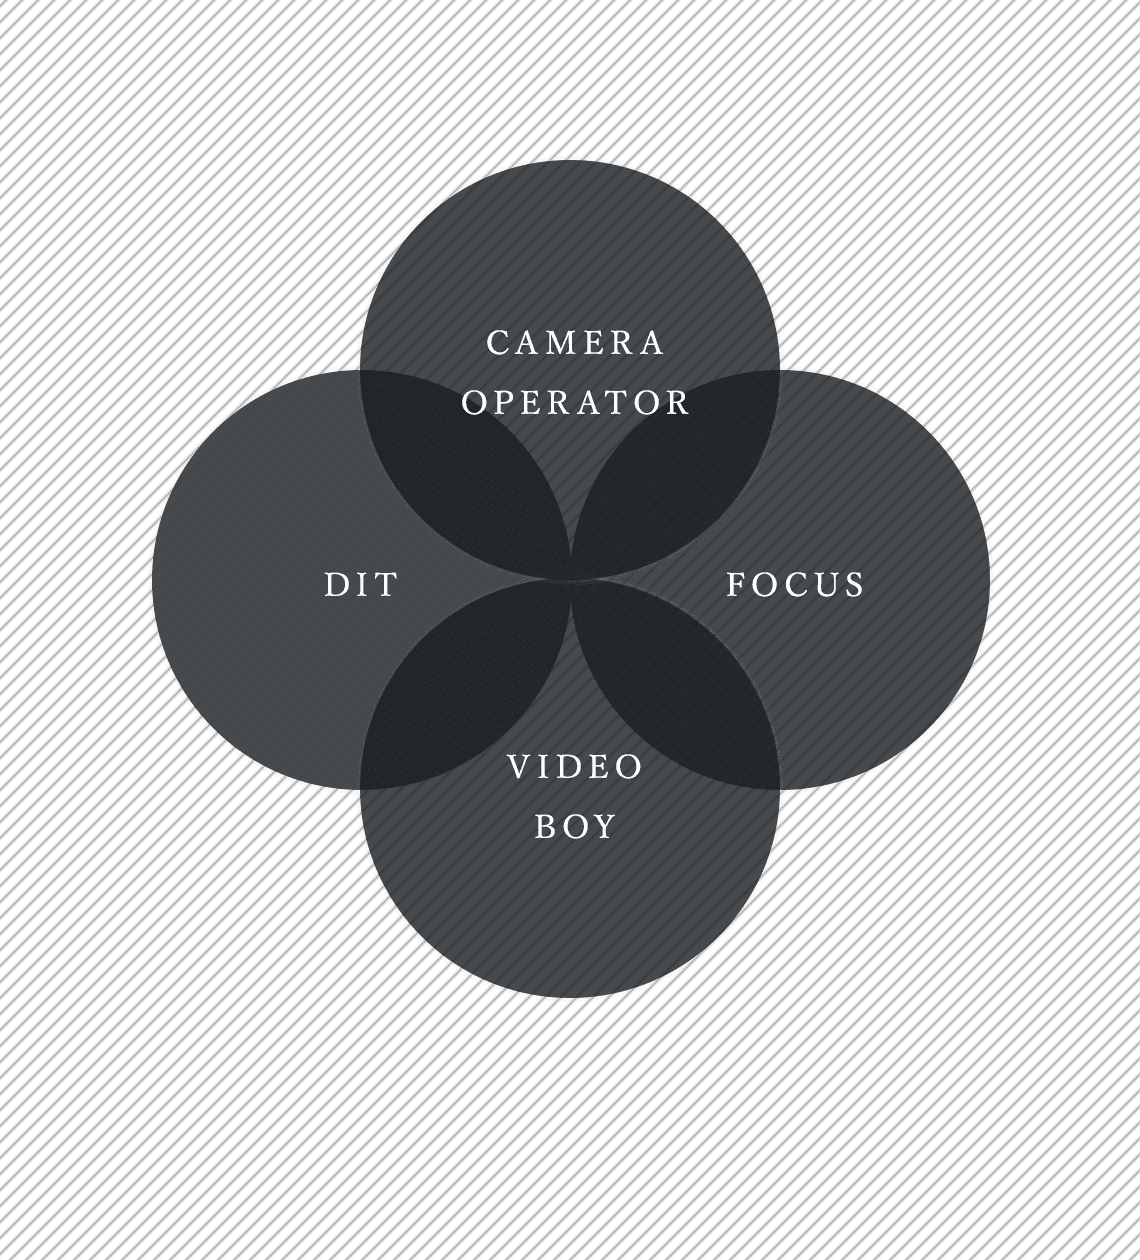 CAMERA OPERATOR / DIT / VIDEO BOY / FOCUS